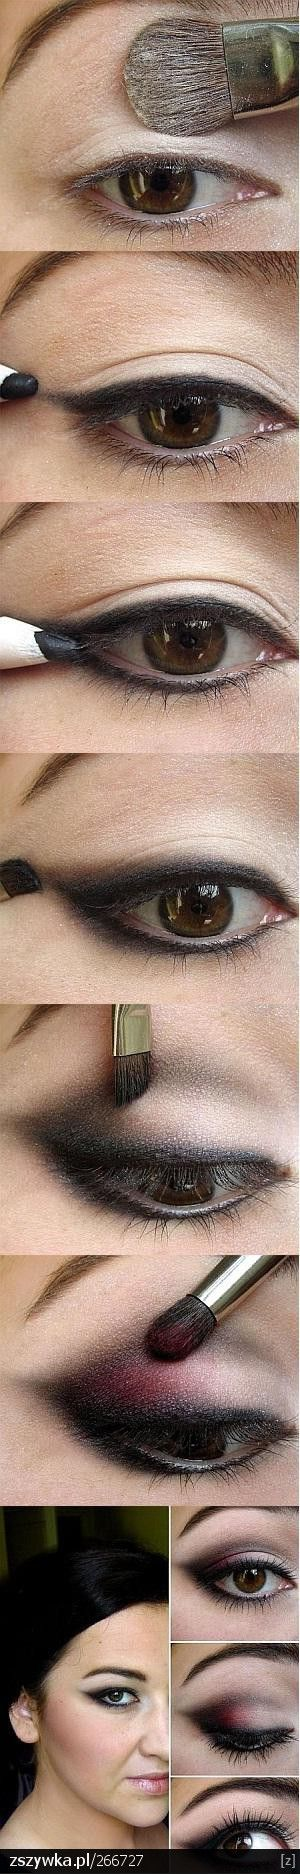 Great details of how to do a smokey eye with a pop or red. Though if I try I will use a different color